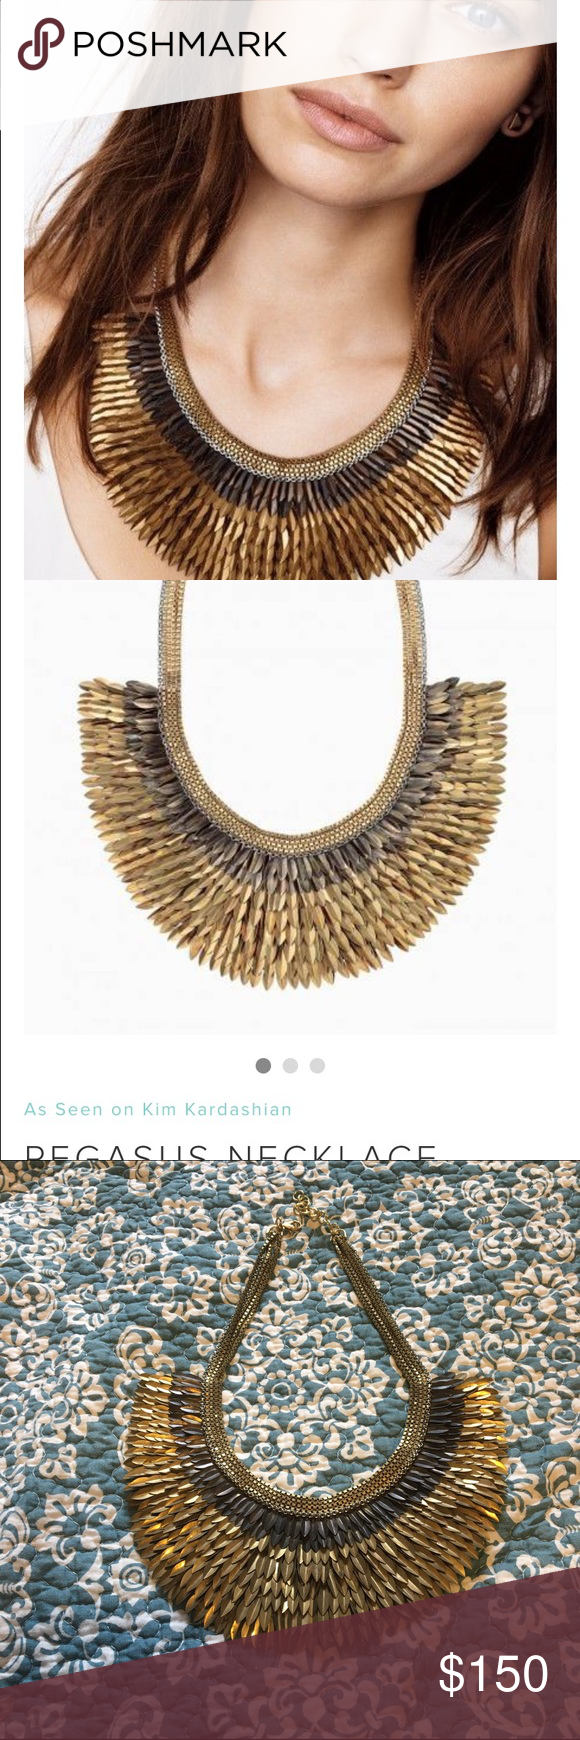 """Pegasus Necklace This was a gift from an ex that was not """"me"""" And therefore never worn.  The Stella and Dot description: A striking bib of gold feathers hand sewn to silk organza cascade. Made entirely by hand in India.  As seen on TV personalities Kathie Lee Gifford, Kim & Kourtney Kardashian, and actress Shay Mitchell. As seen in Lucky, InStyle, Real Simple and Timeout Magazine! 4"""" of chain on each side with a 2"""" extender. 16 1/2"""" length. Lobster clasp. Stella & Dot Jewelry Necklaces"""